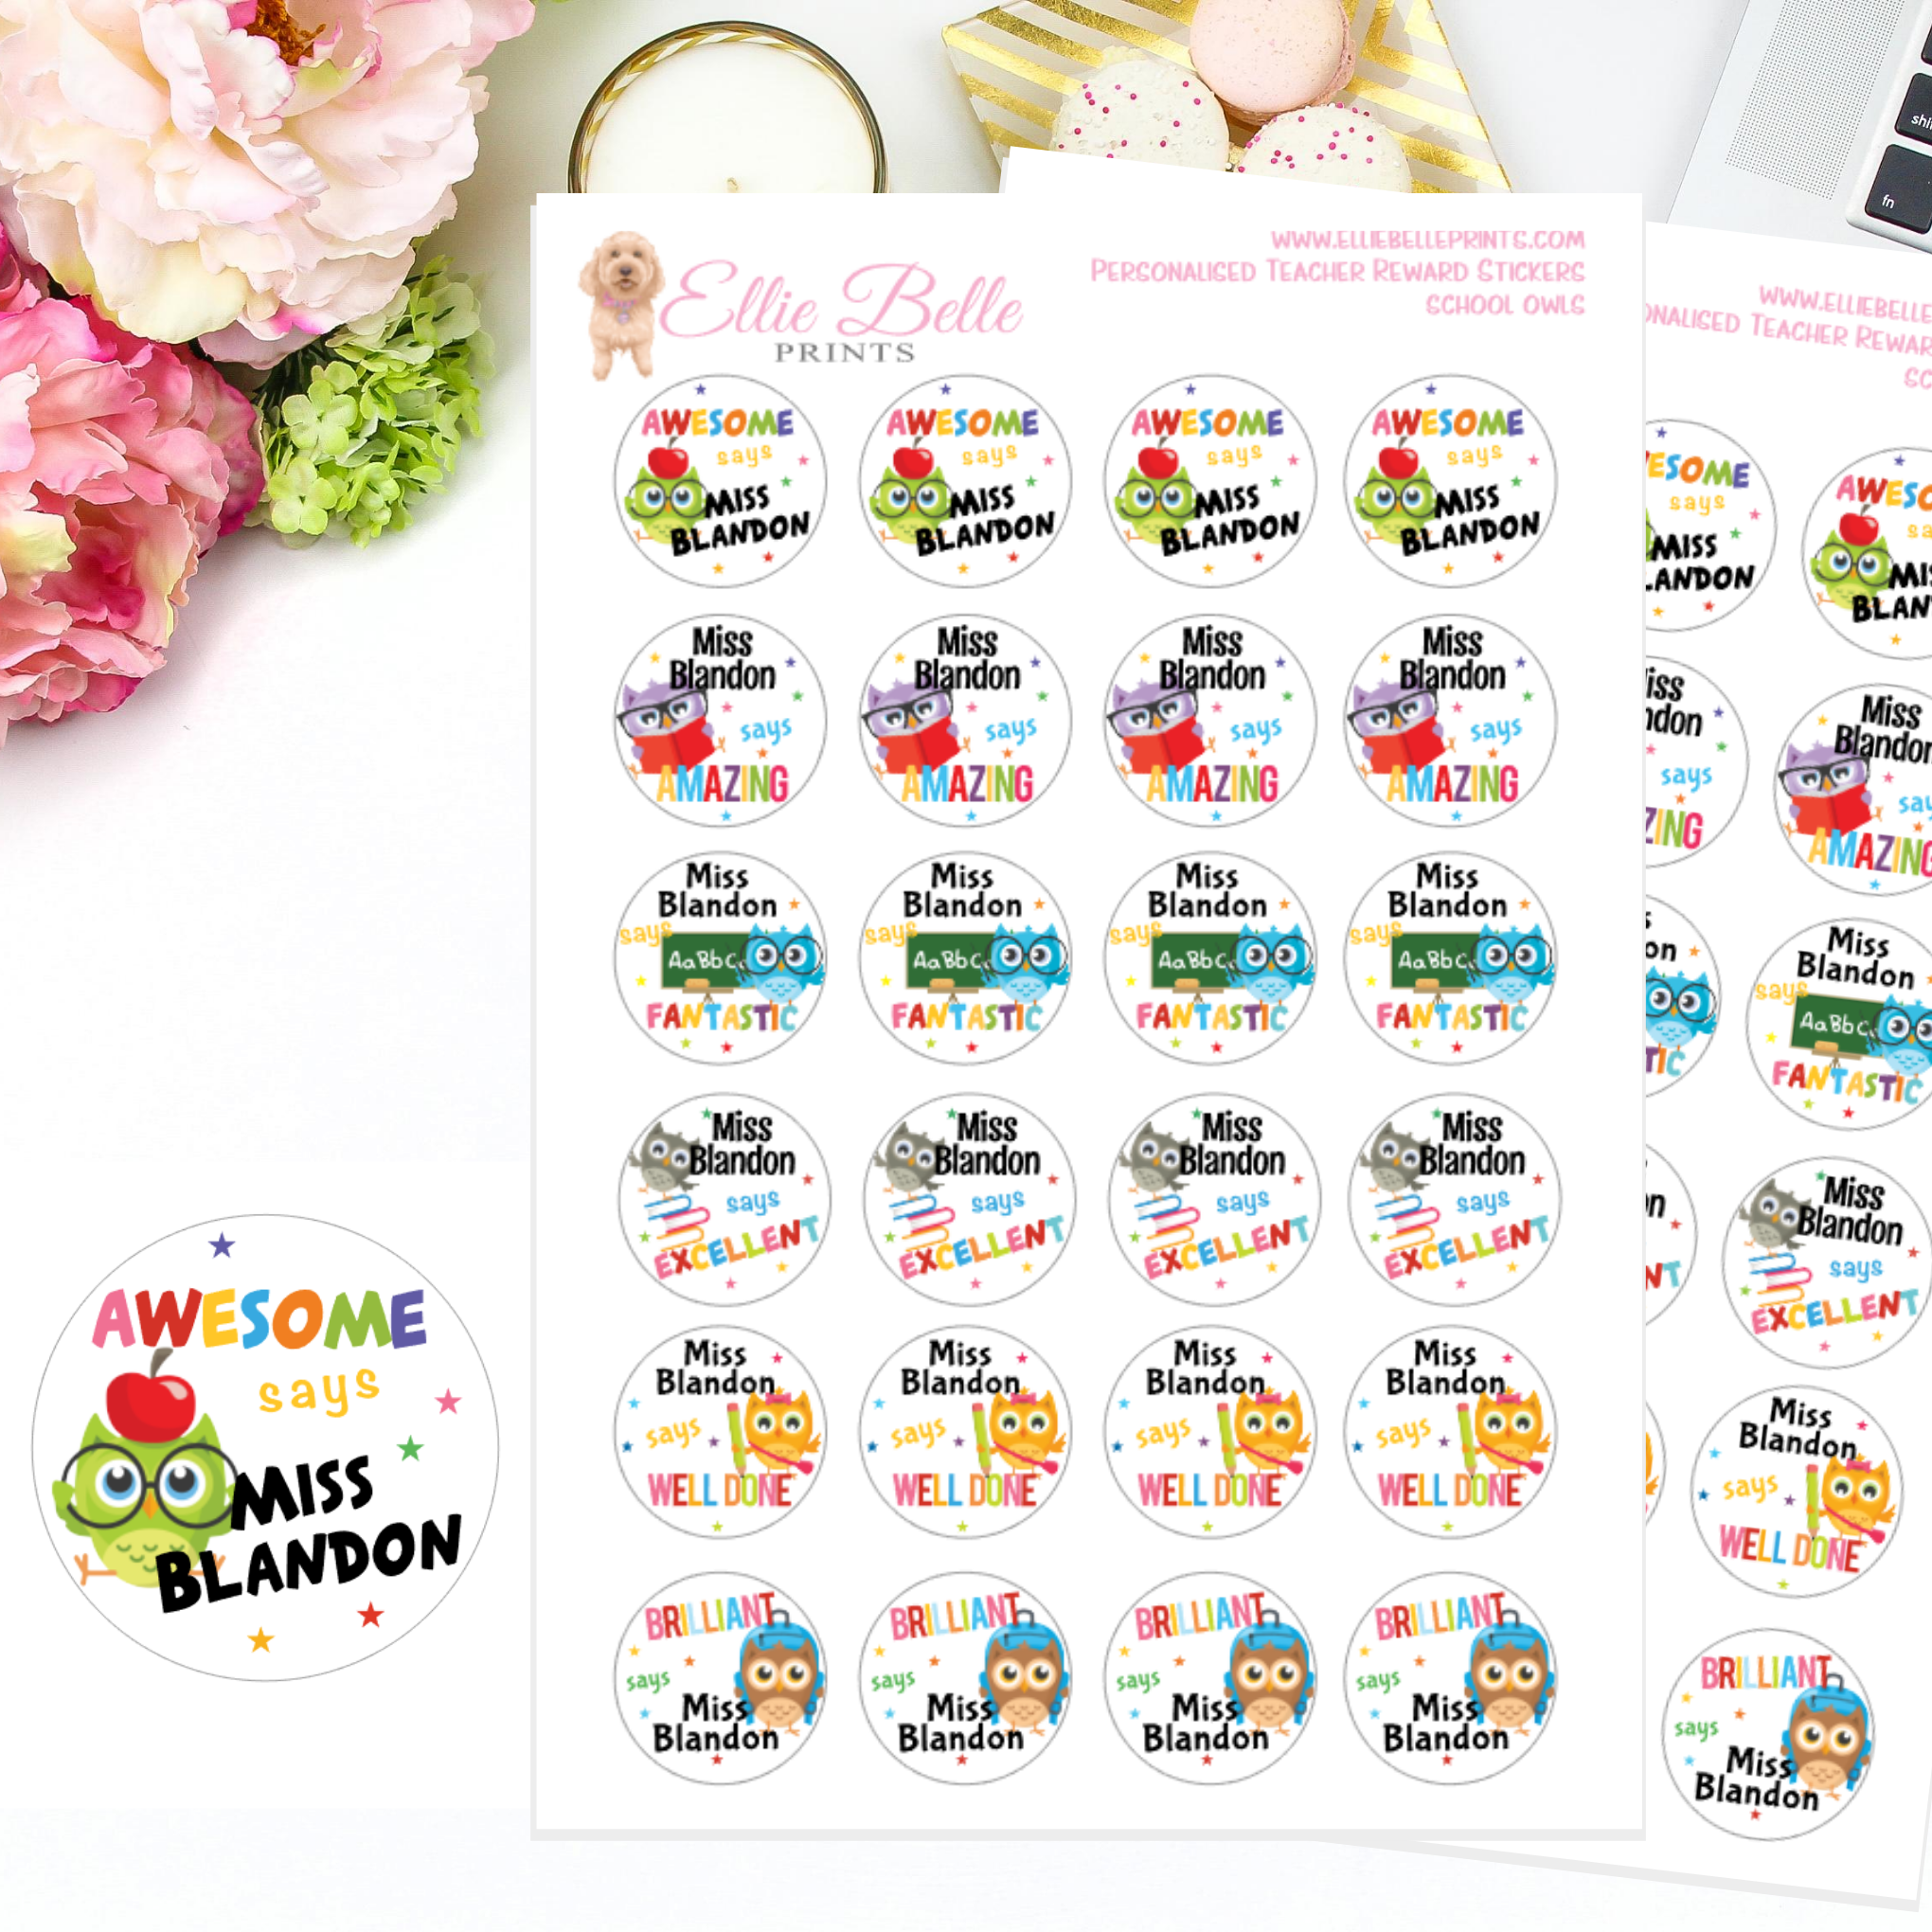 School Owls - Personalised Teacher Reward Stickers